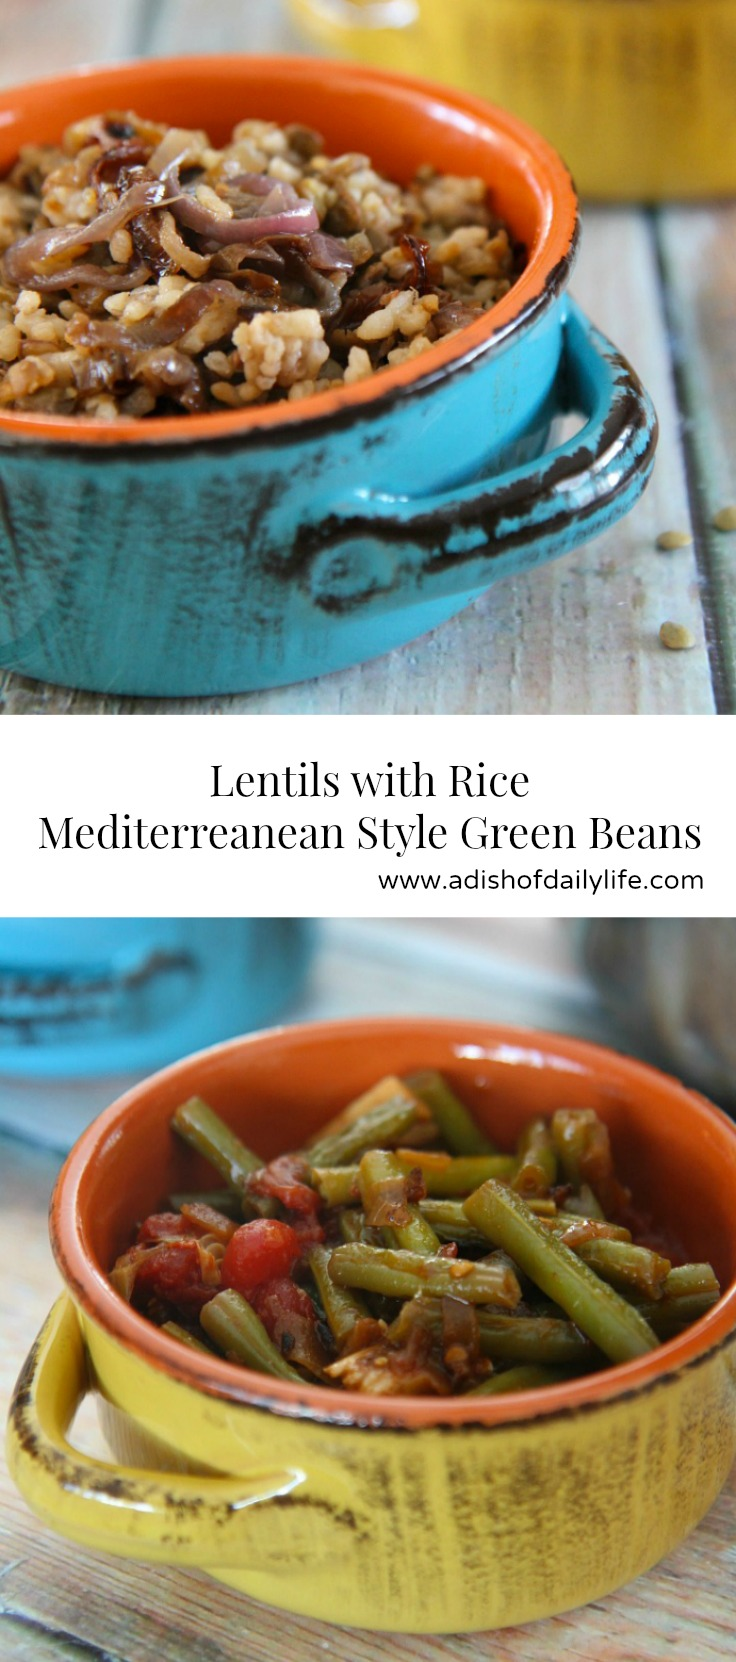 Middle Eastern Recipes - Lentils with Rice and Mediterranean style Vegetarian Green Beans are a delicious and healthy meatless meal (budget friendly too!)